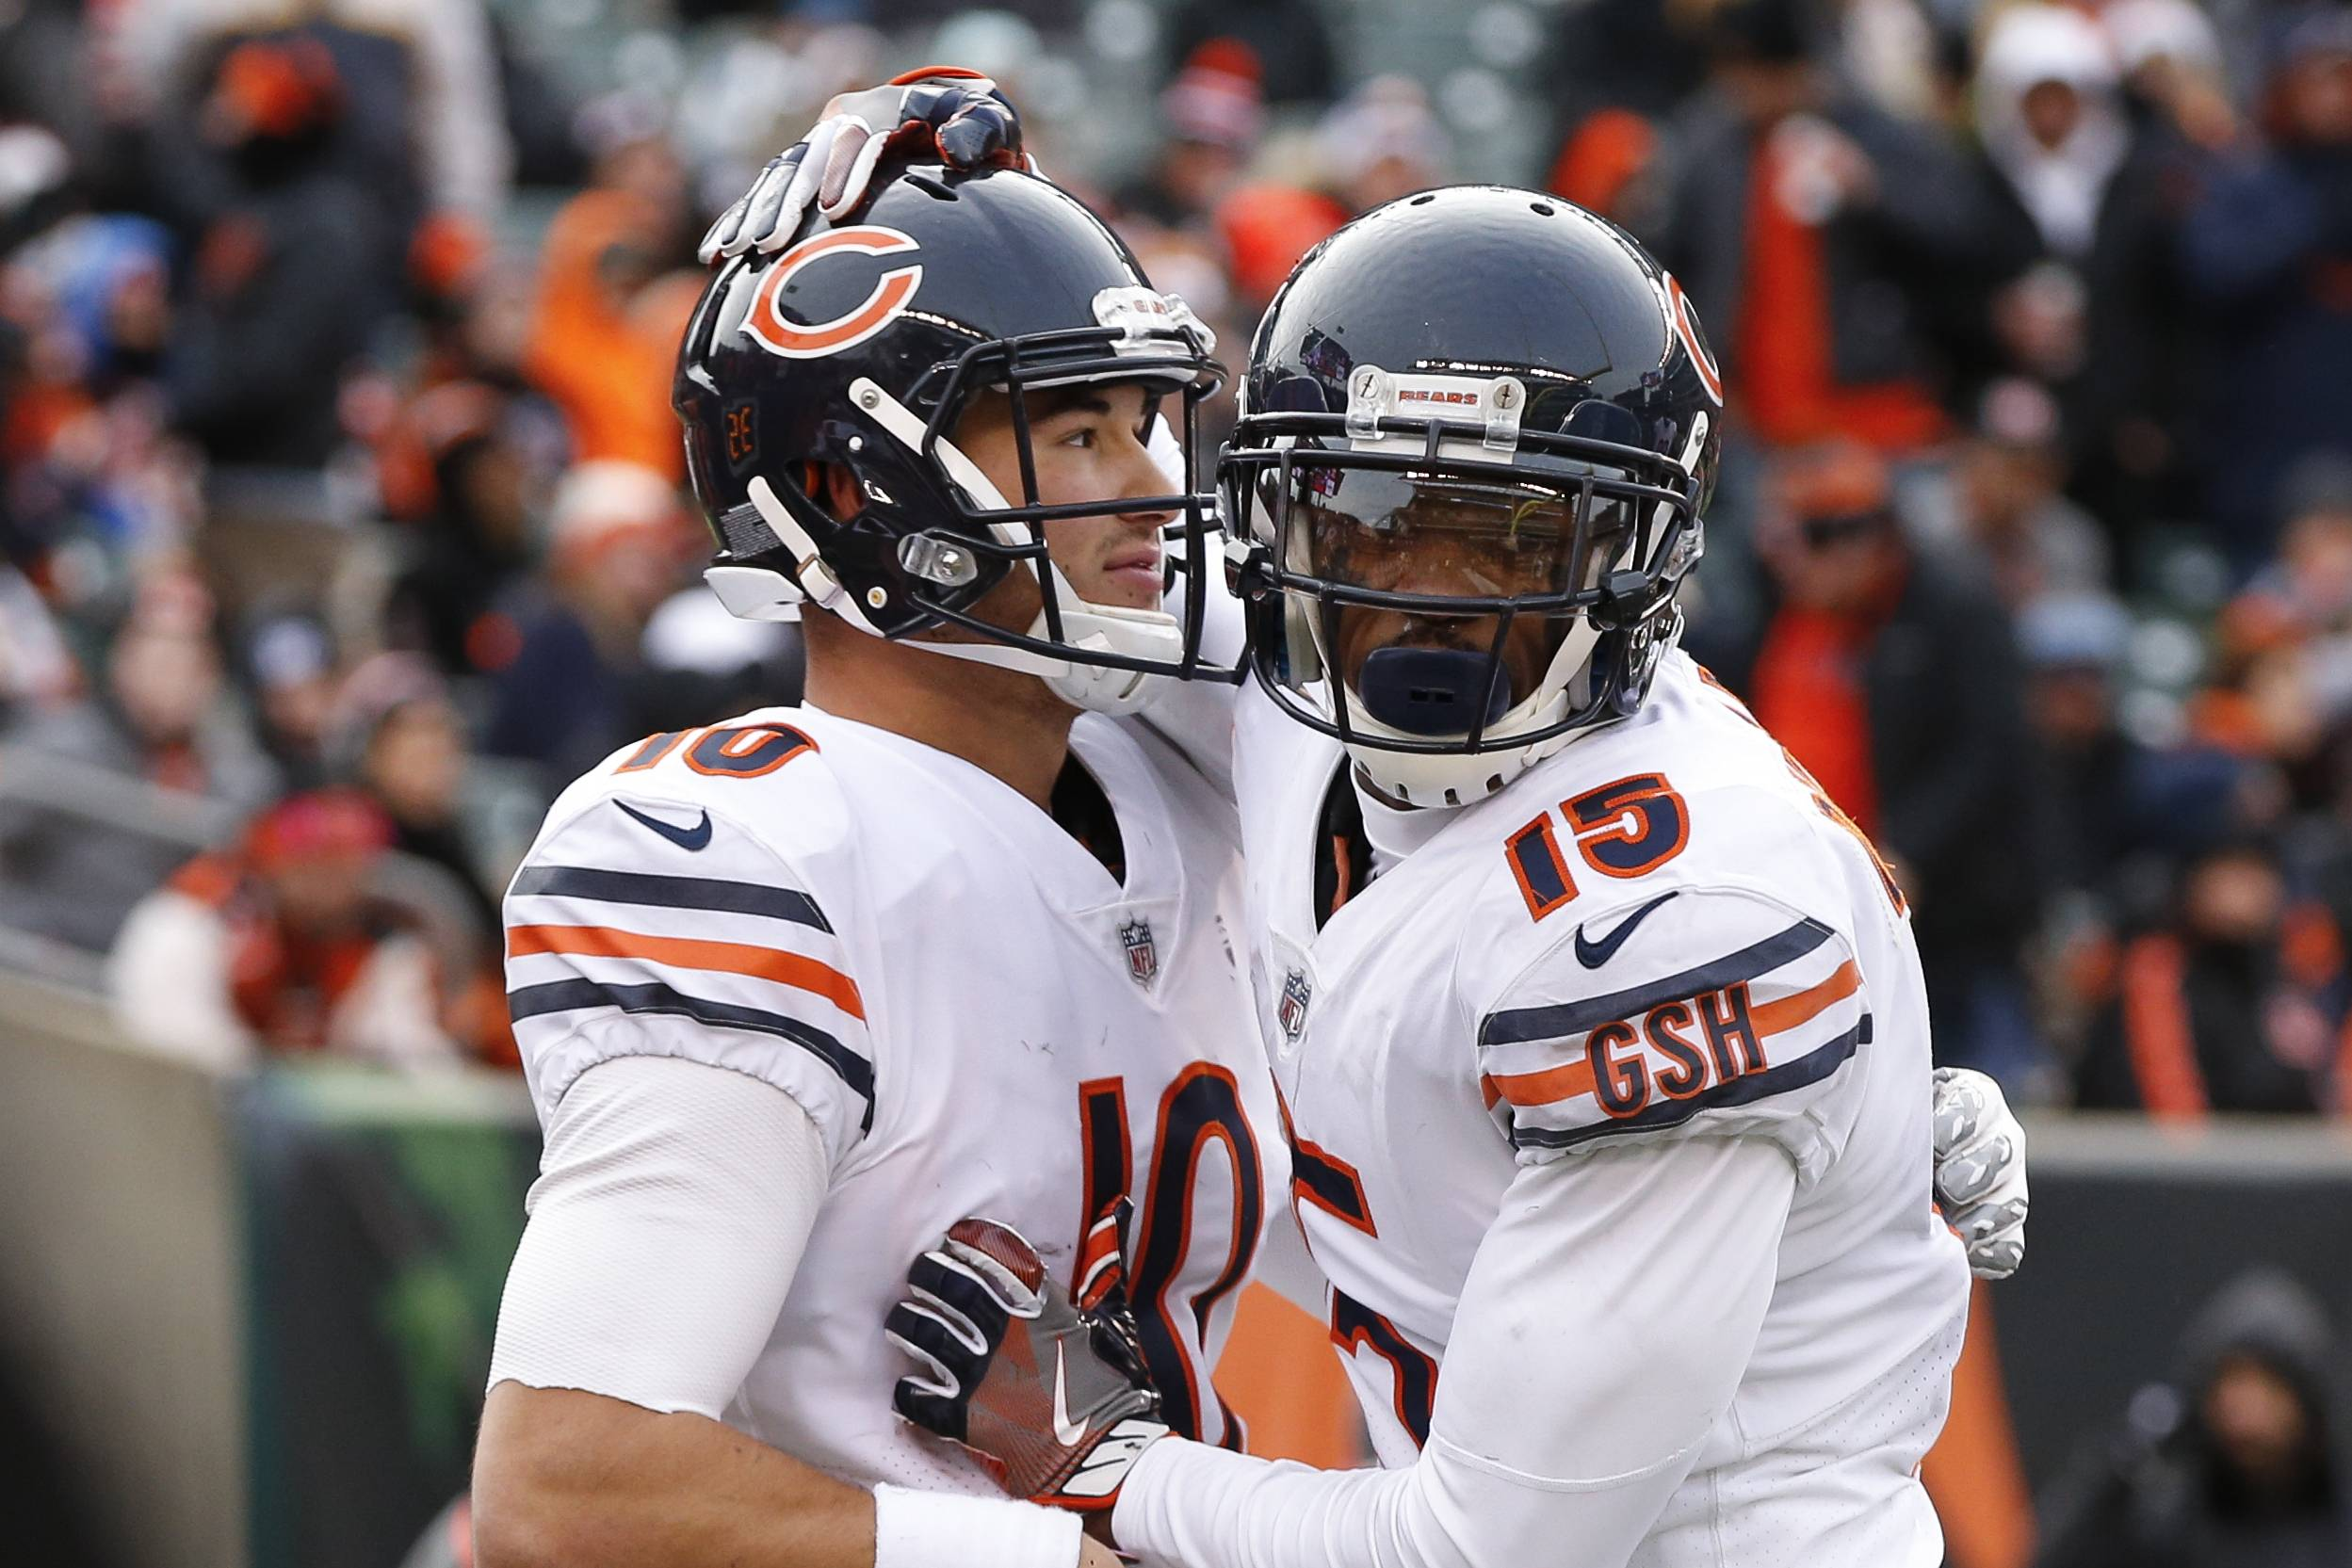 Chicago Bears quarterback Mitchell Trubisky, left, celebrates his touchdown with wide receiver Josh Bellamy (15) in the second half of an NFL football game against the Cincinnati Bengals, Sunday, Dec. 10, 2017, in Cincinnati.